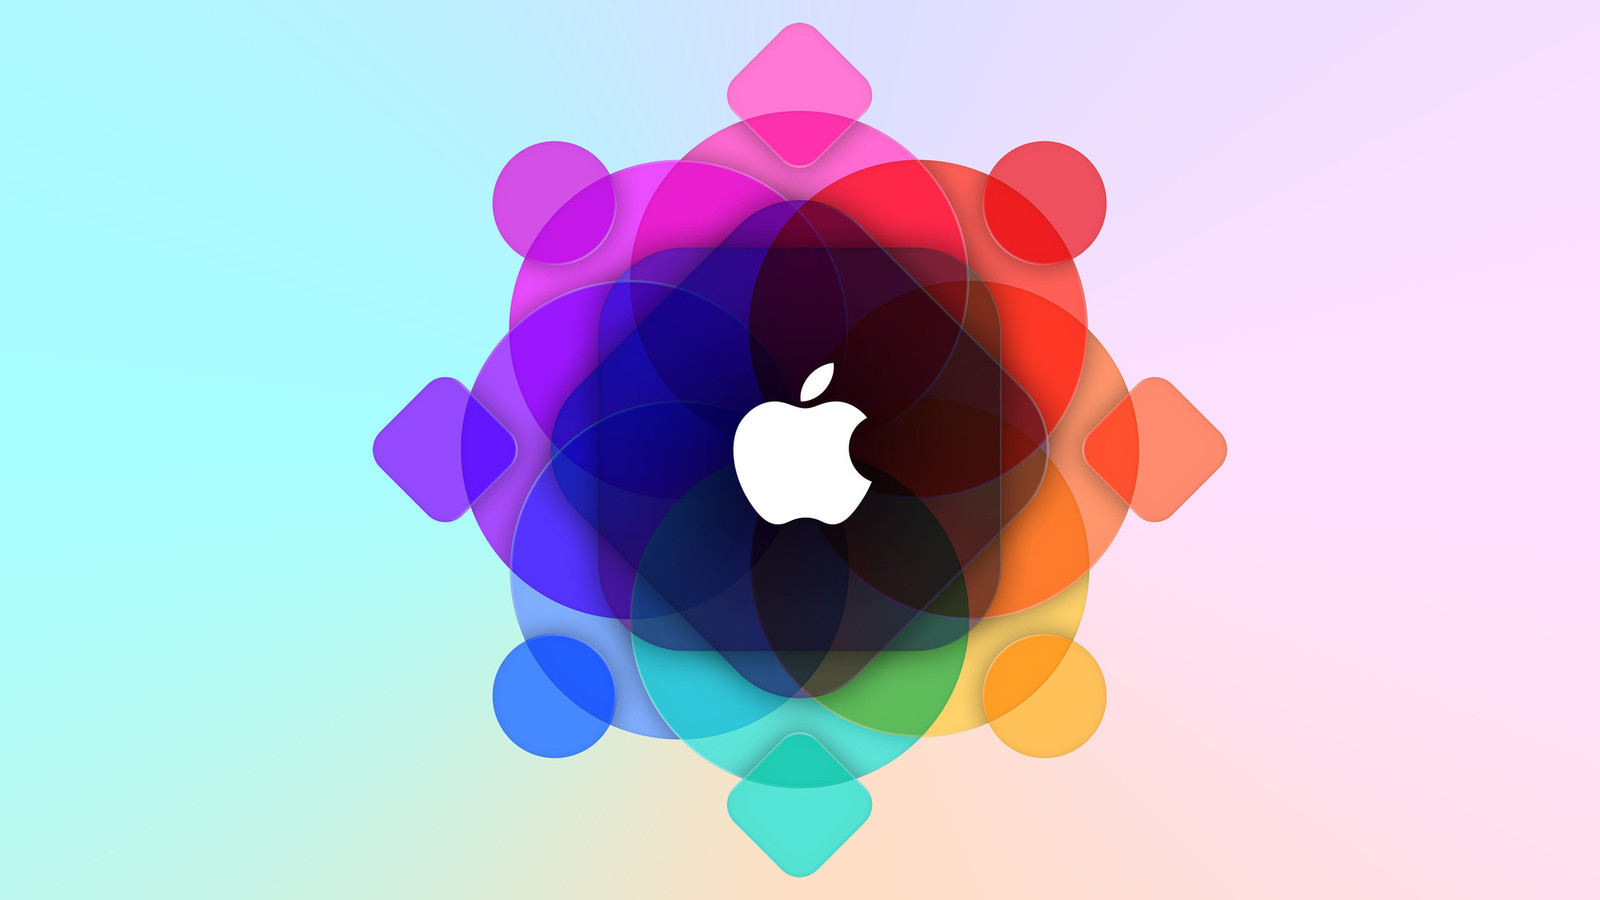 These are the WWDC 2015 wallpapers for iPhone iPad and Mac that you 1600x900